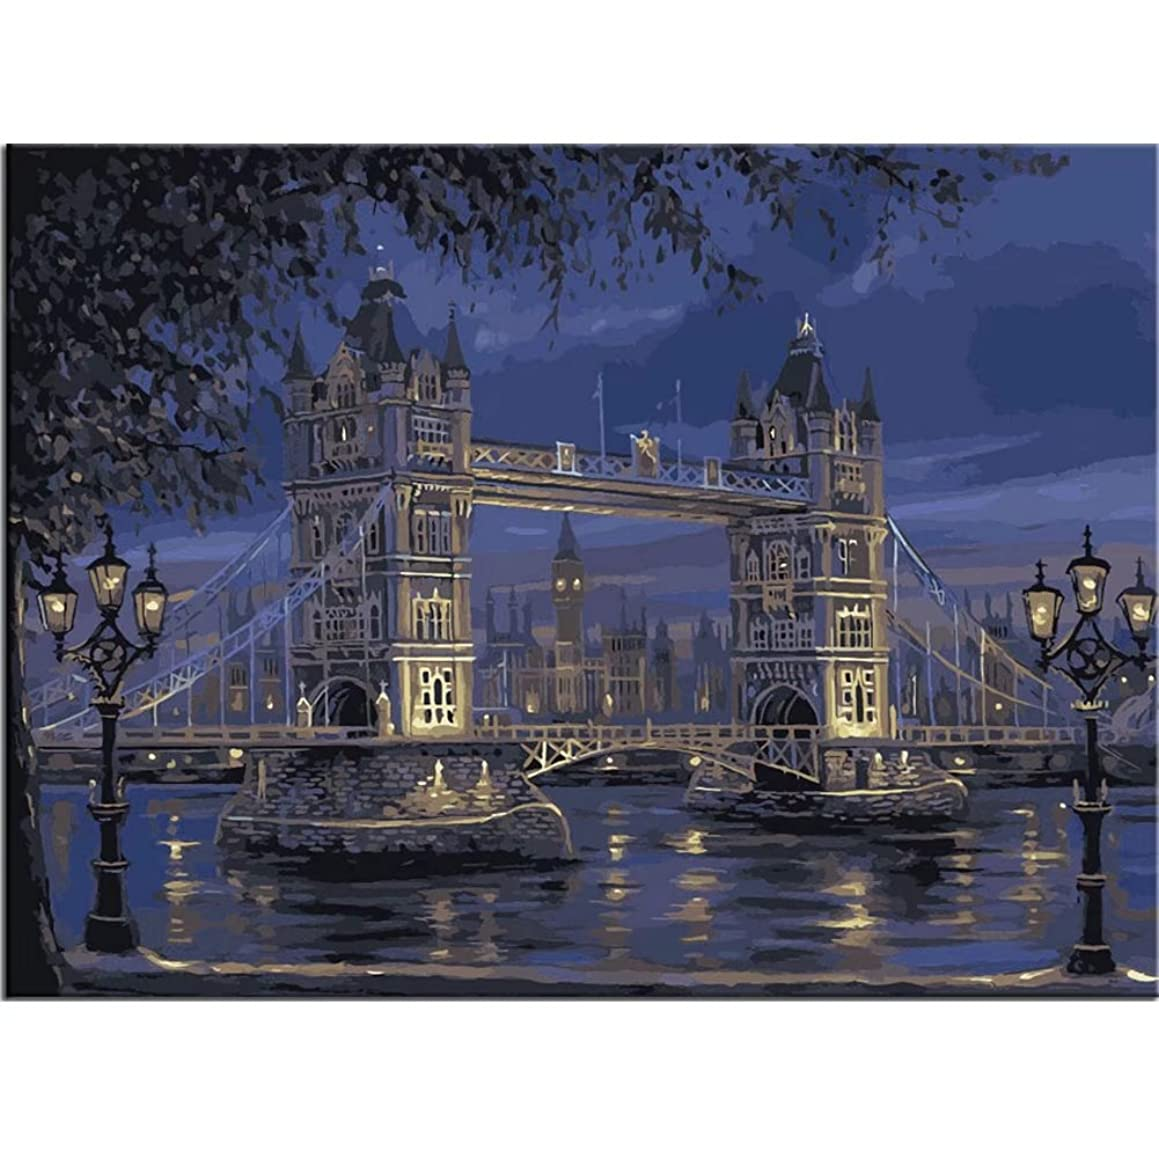 Paint by number Kit for Adults Beginner Landscape DIY Oil Painting on Linen Canvas with Brush Paints Pigment No Blending No Mixing fantastic Pictures Painting London Tower Bridge 16x20 Inch Frameless